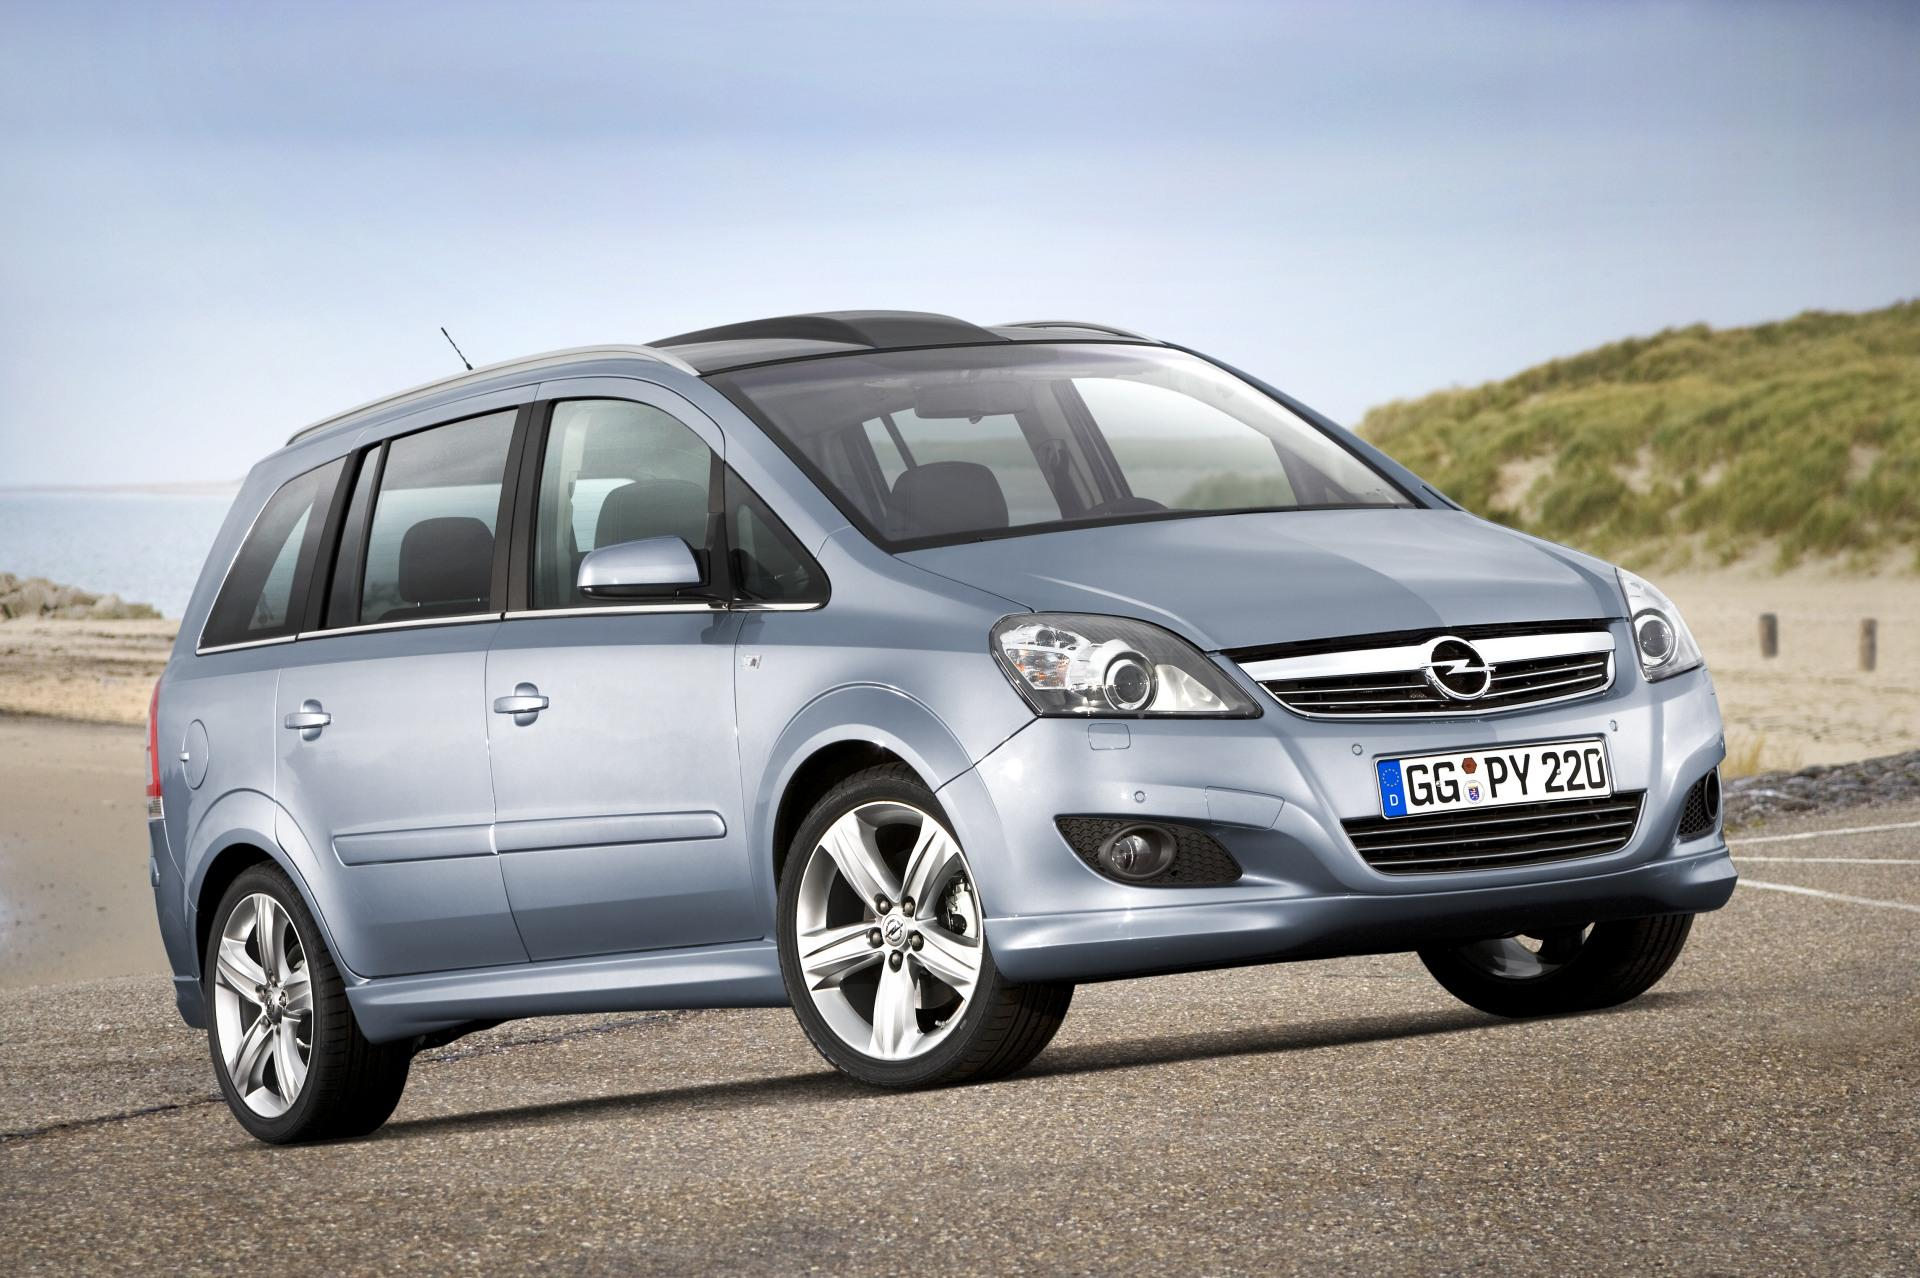 2009 opel zafira news and information. Black Bedroom Furniture Sets. Home Design Ideas